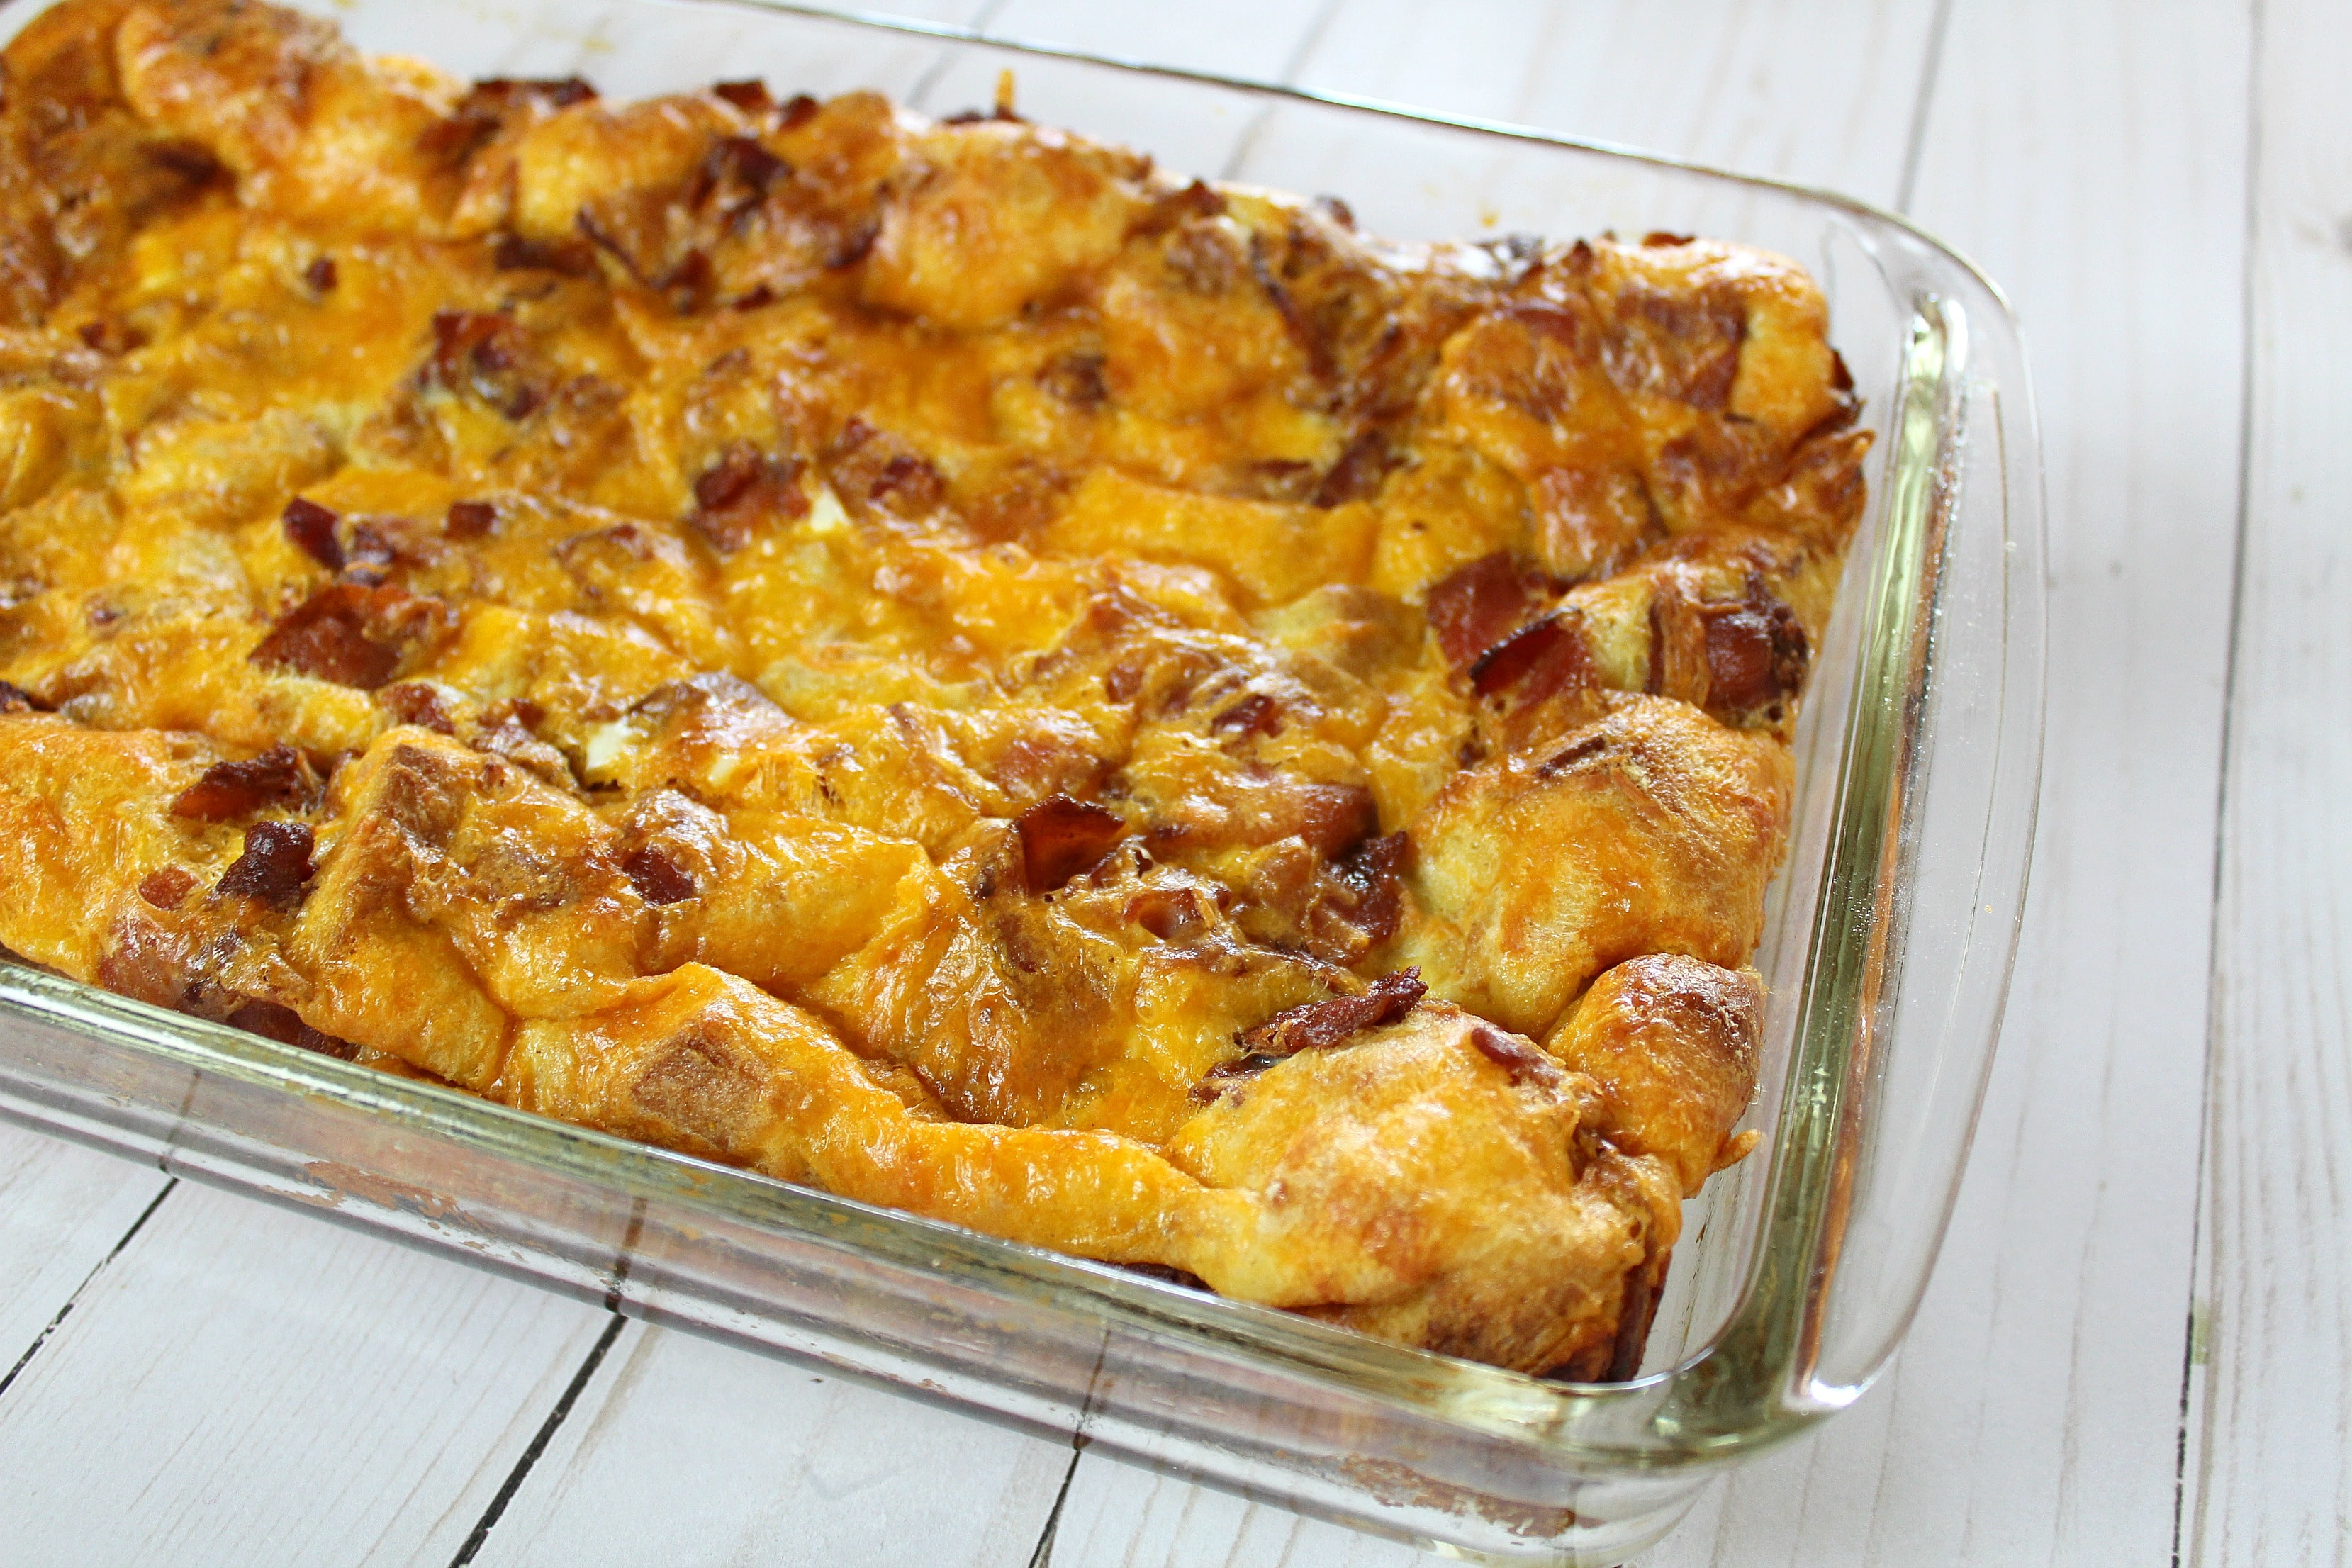 Bake casserole for about 45 minutes, until cheese is golden brown.